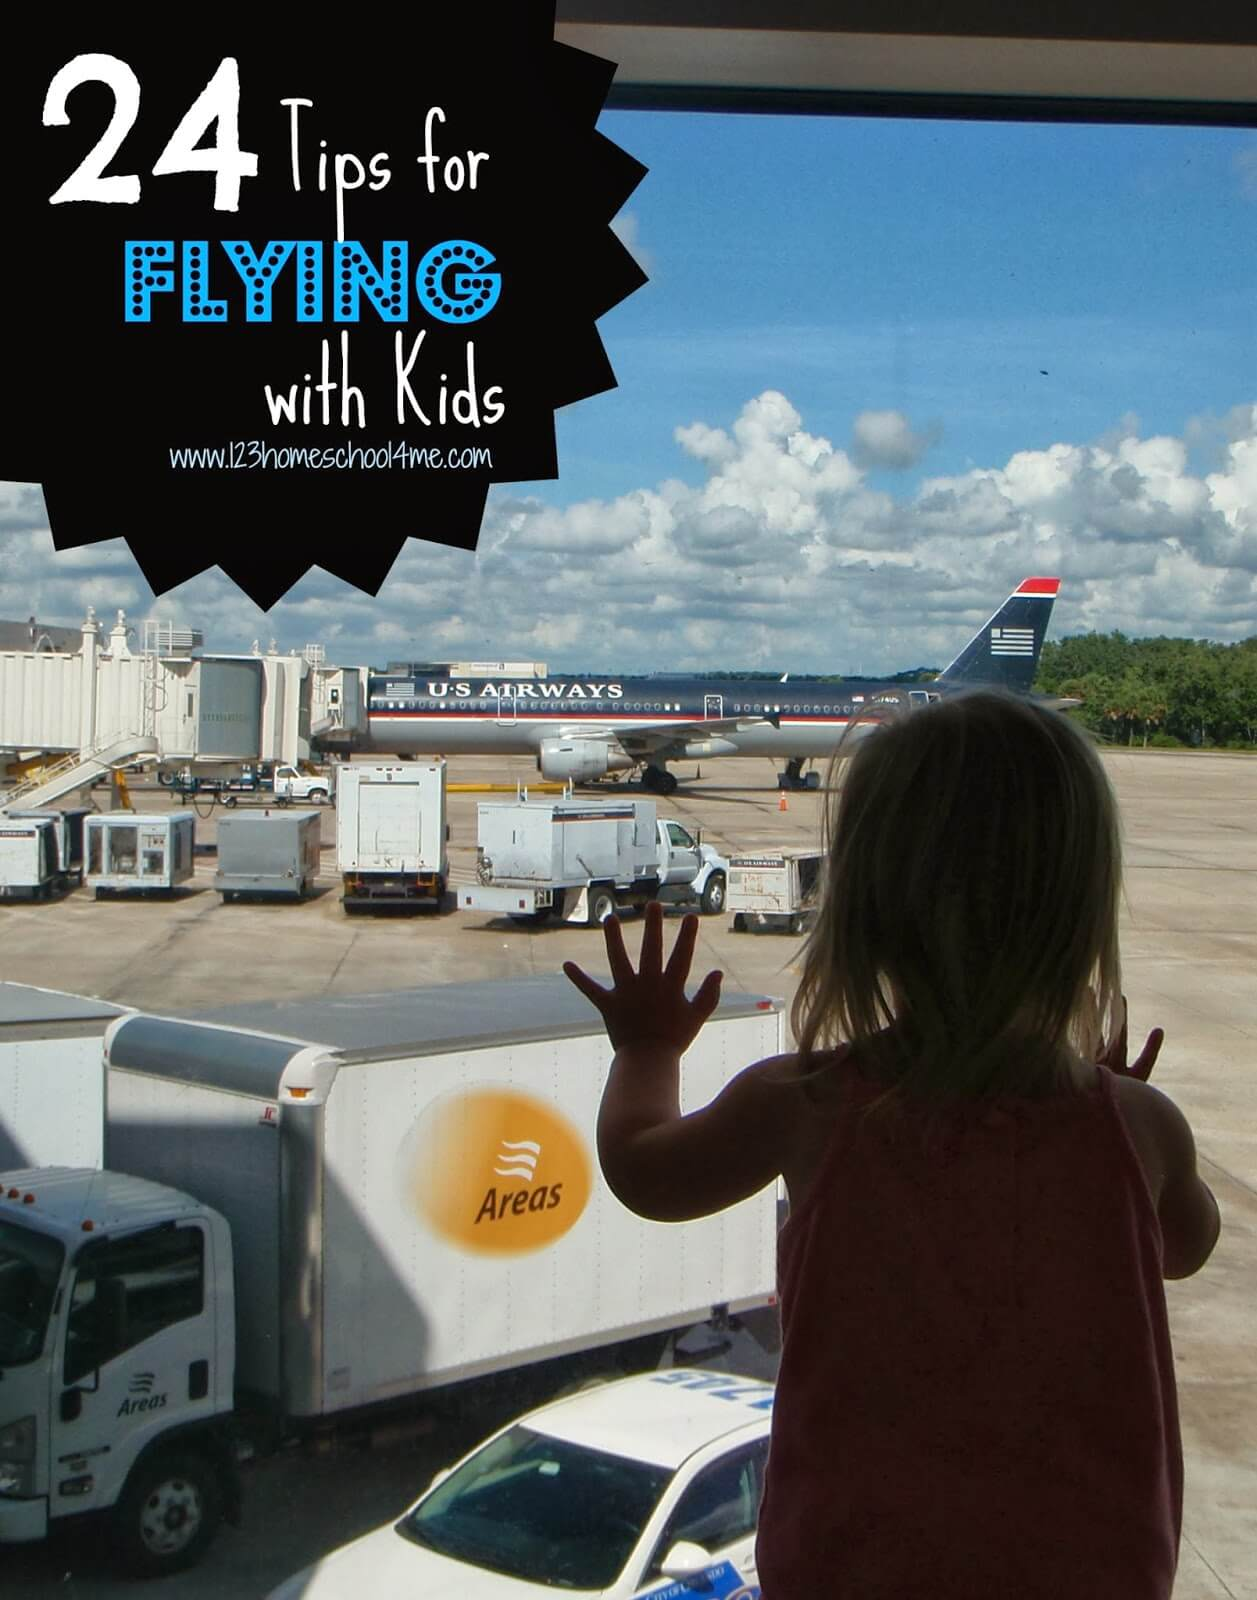 24 Tips for Flying with Kids